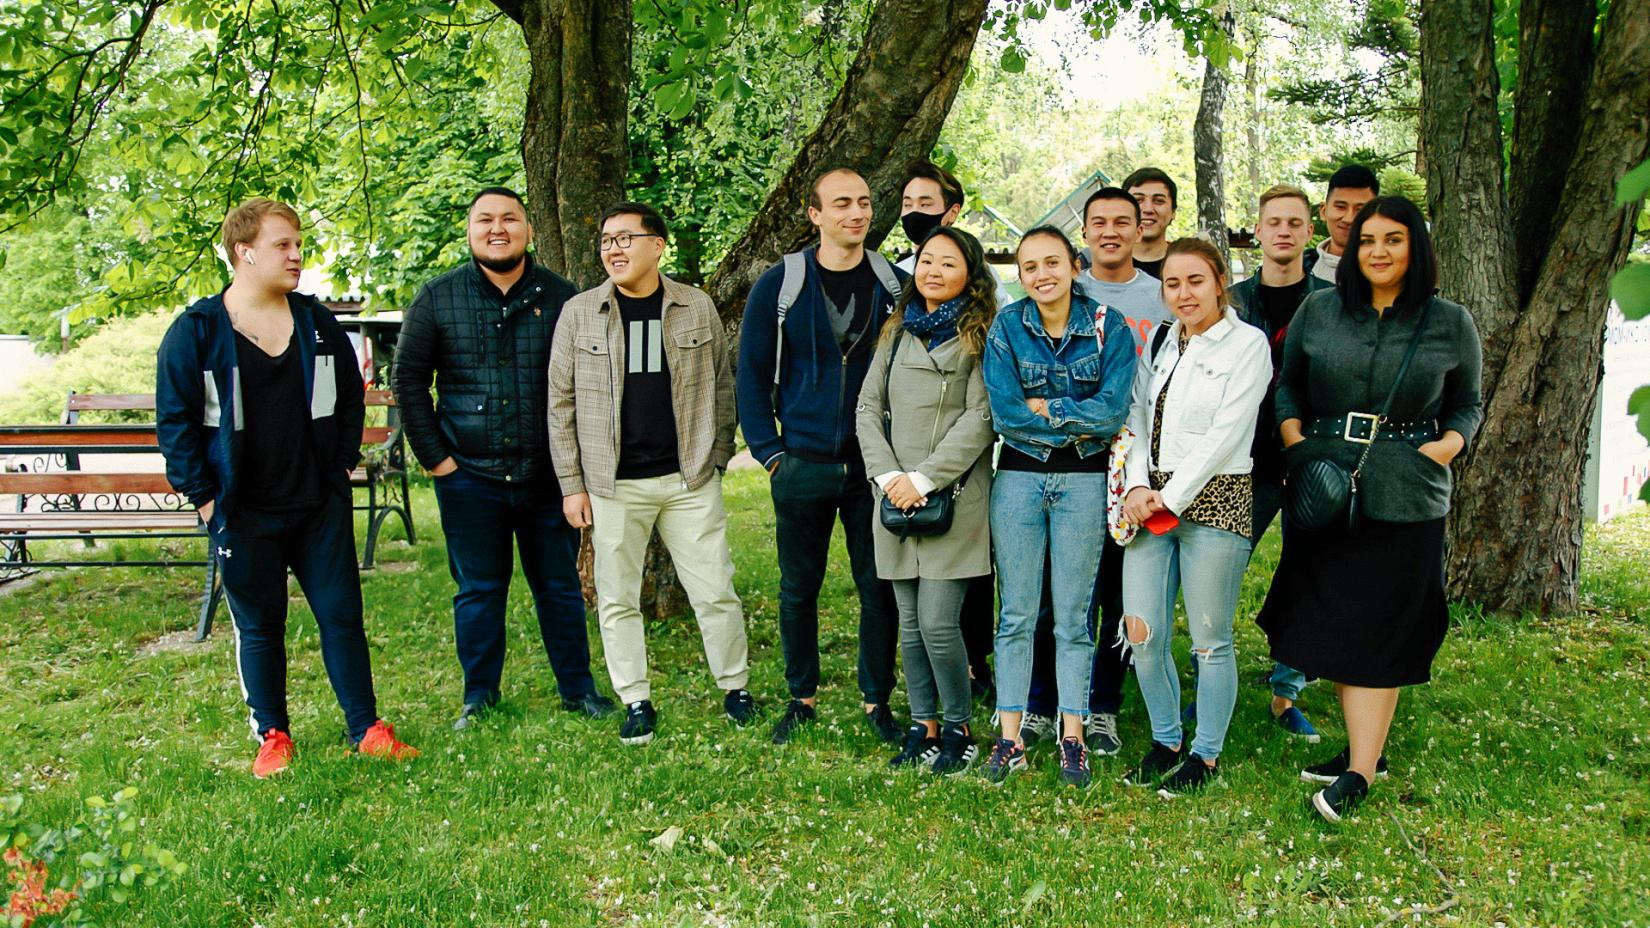 Due to COVID -19 pandemic 14 young Kyrgyz guides found themselves without work